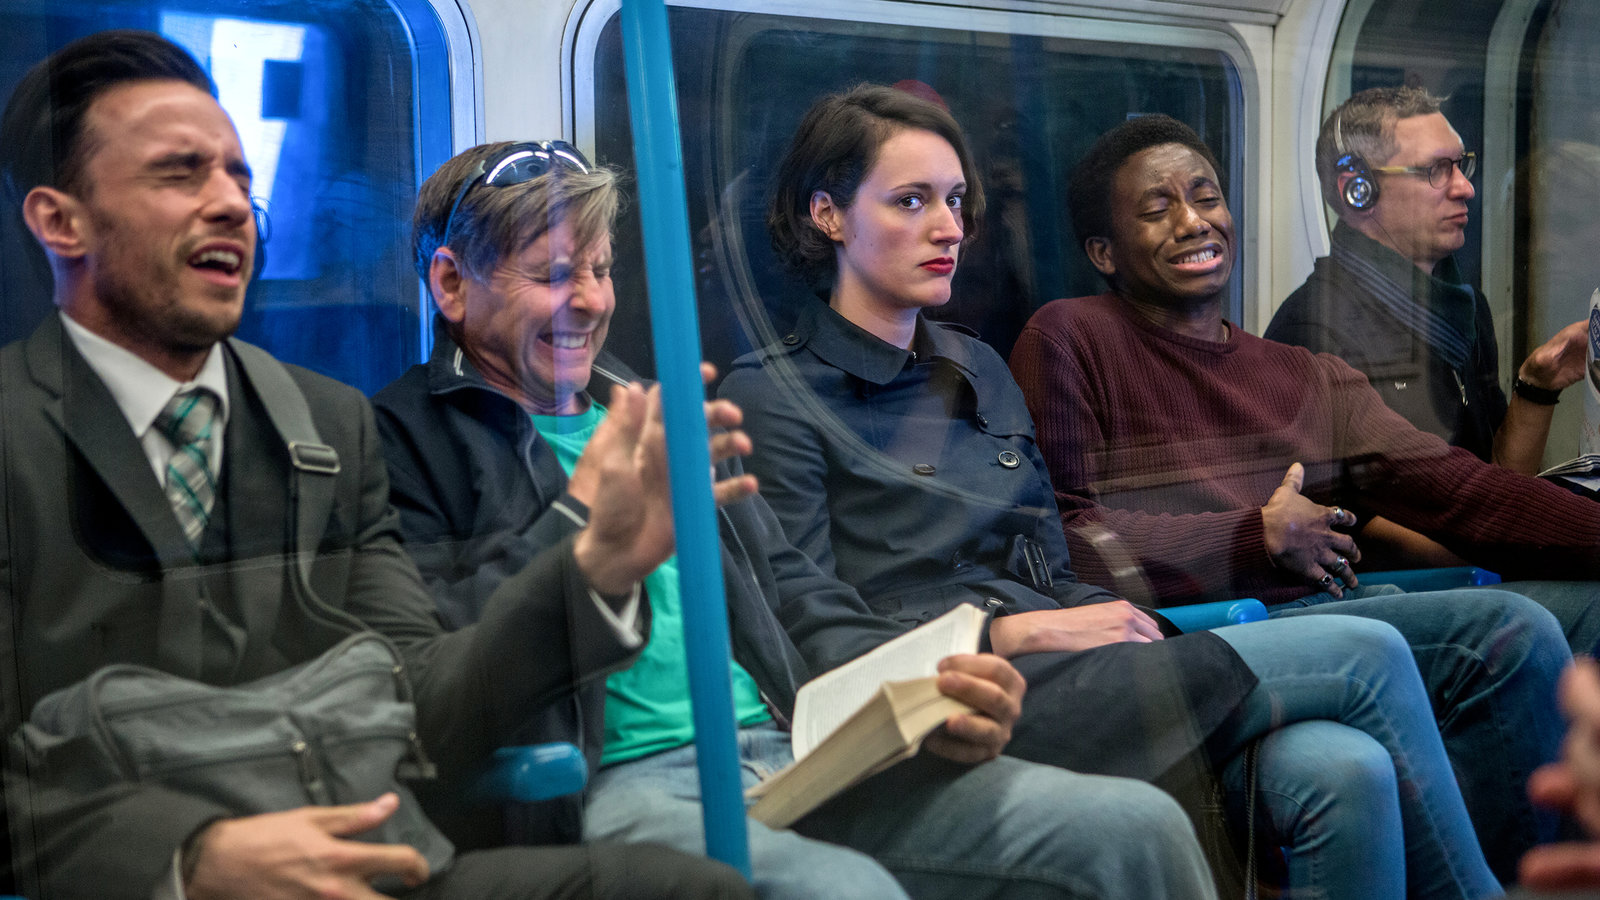 In foto, Phoebe Waller-Bridge in una scena della serie Fleabag